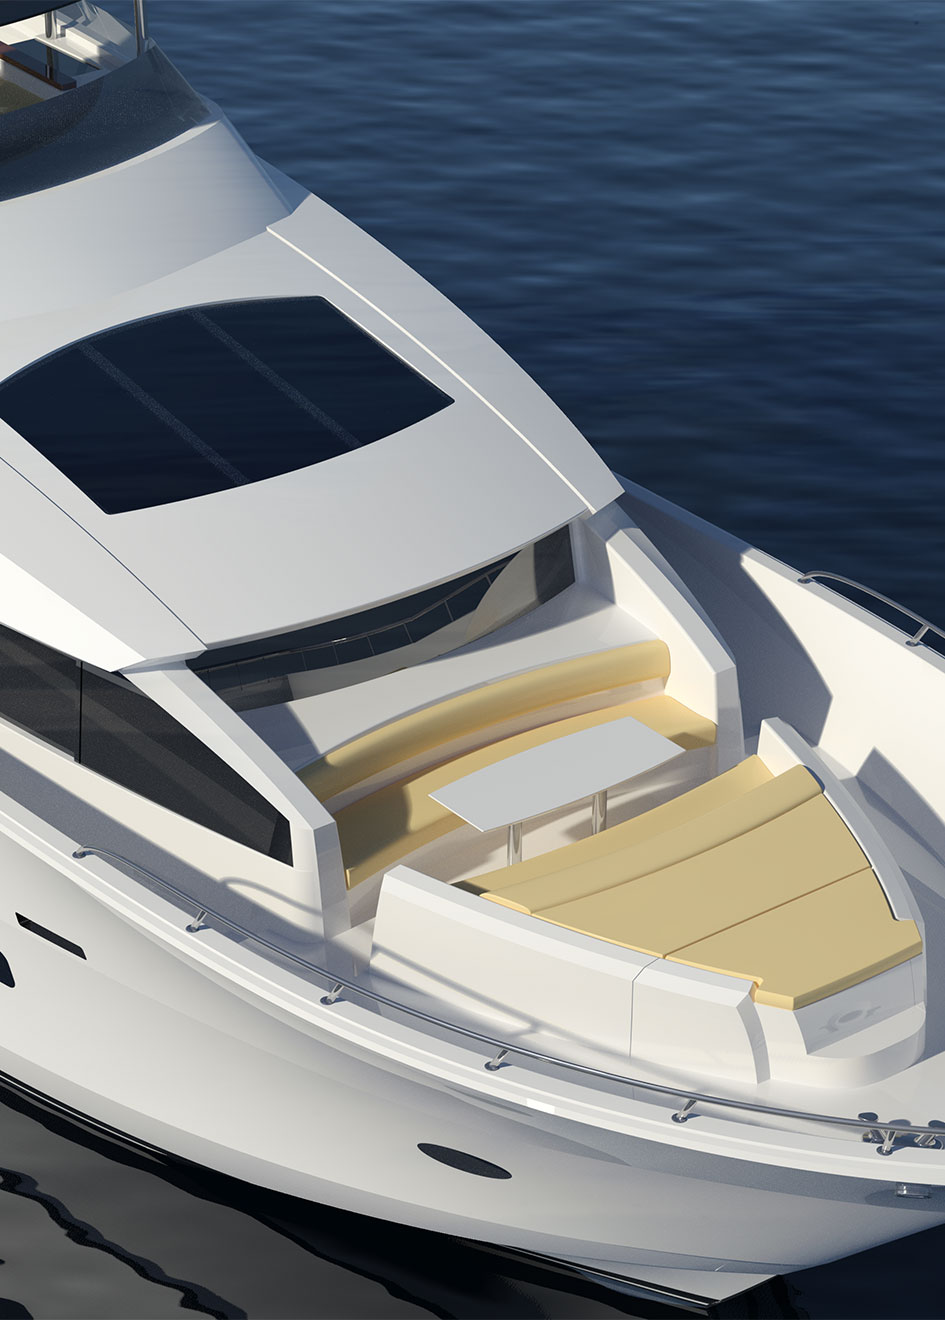 foredeck-of-the-hatteras-90-motor-yacht